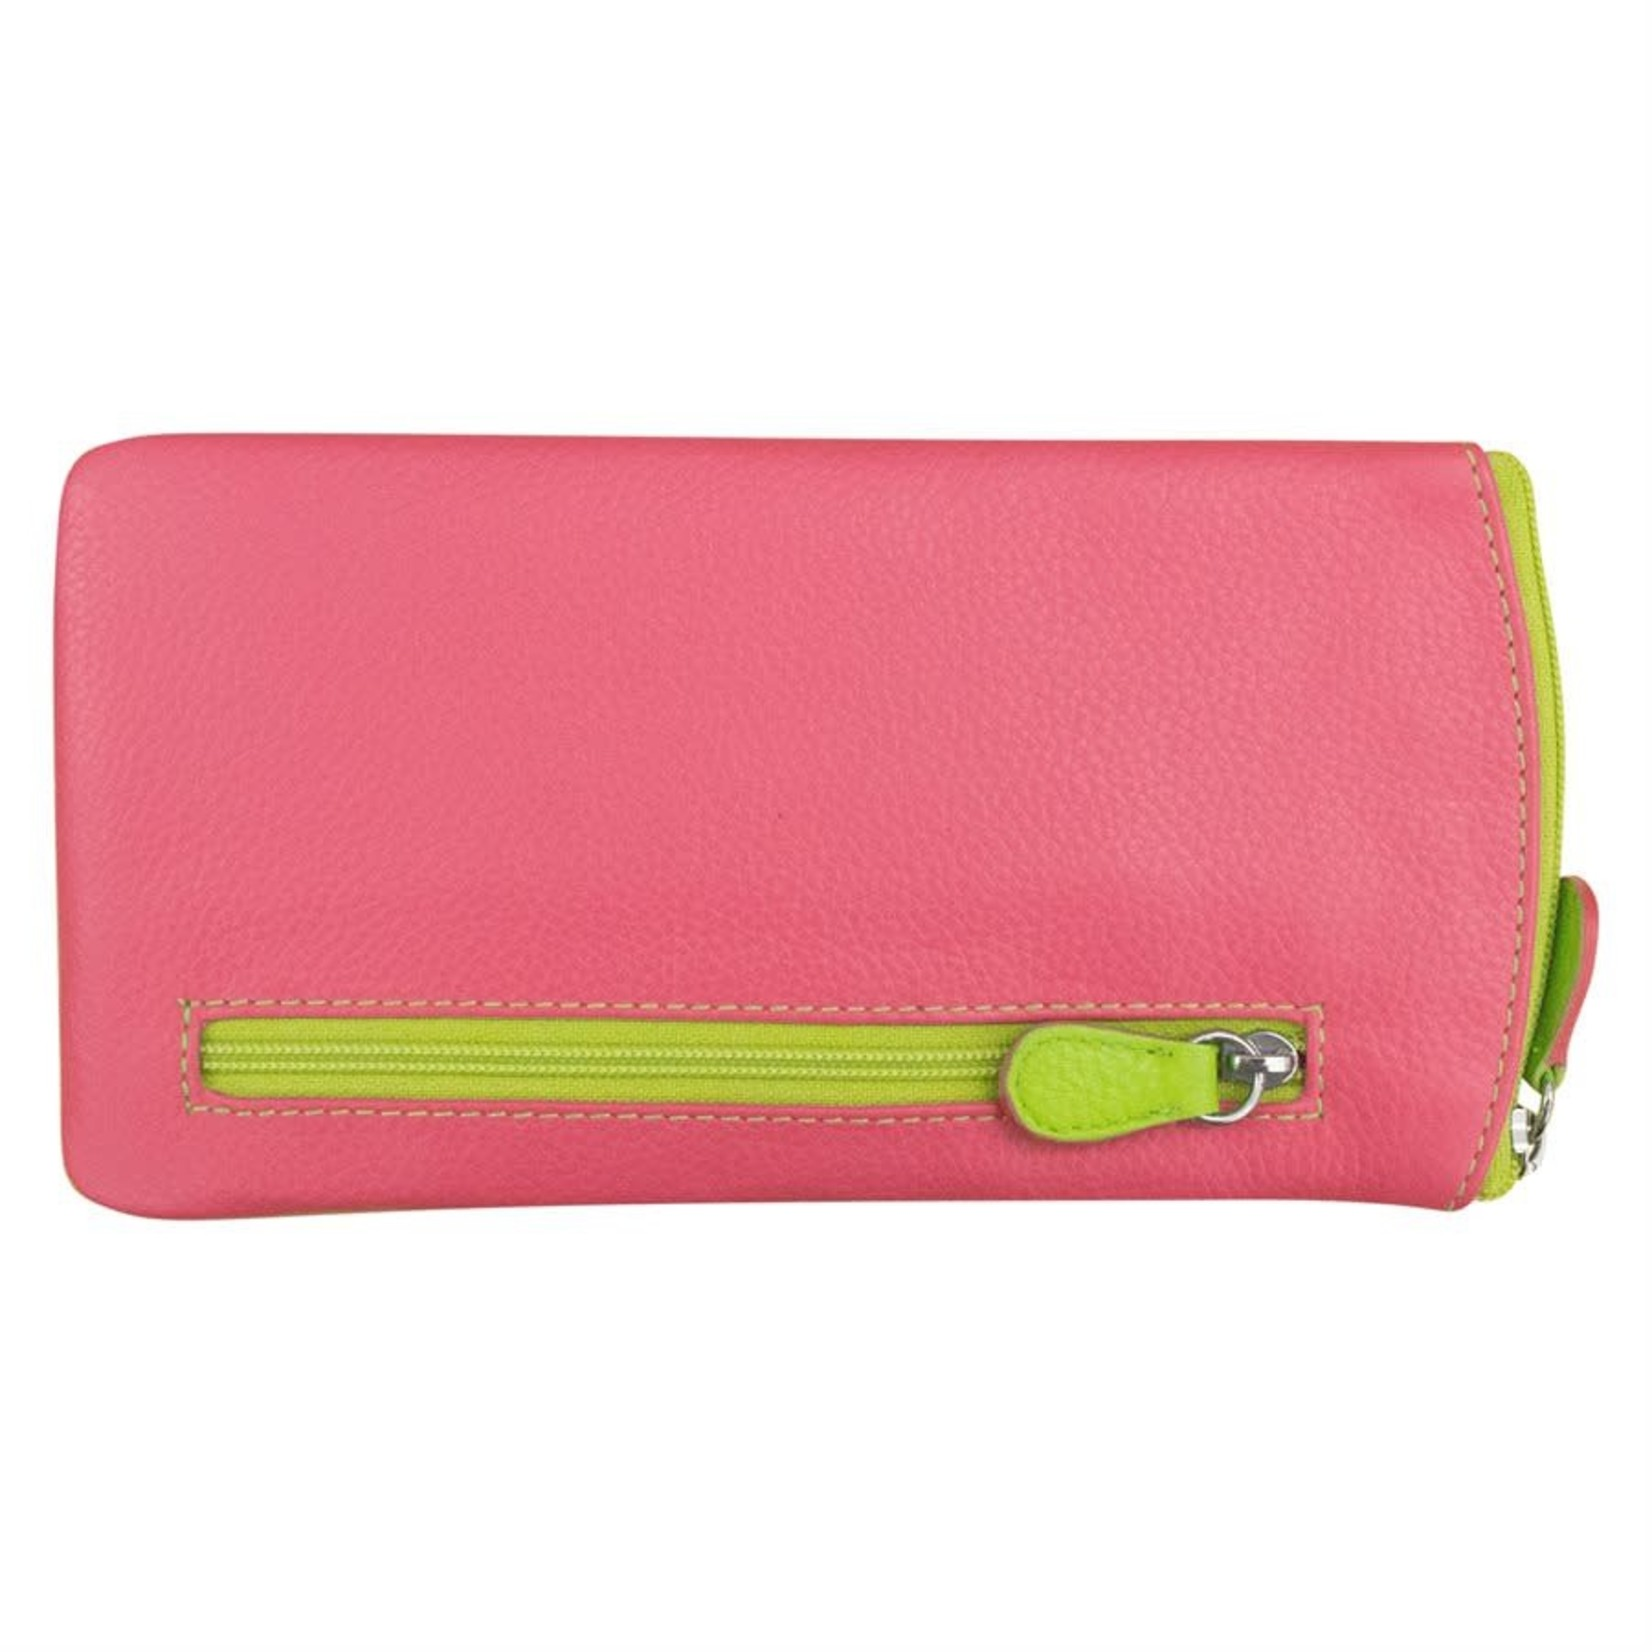 Leather Handbags and Accessories 6462 Hot Pink/Leaf - Leather Eyeglass Case